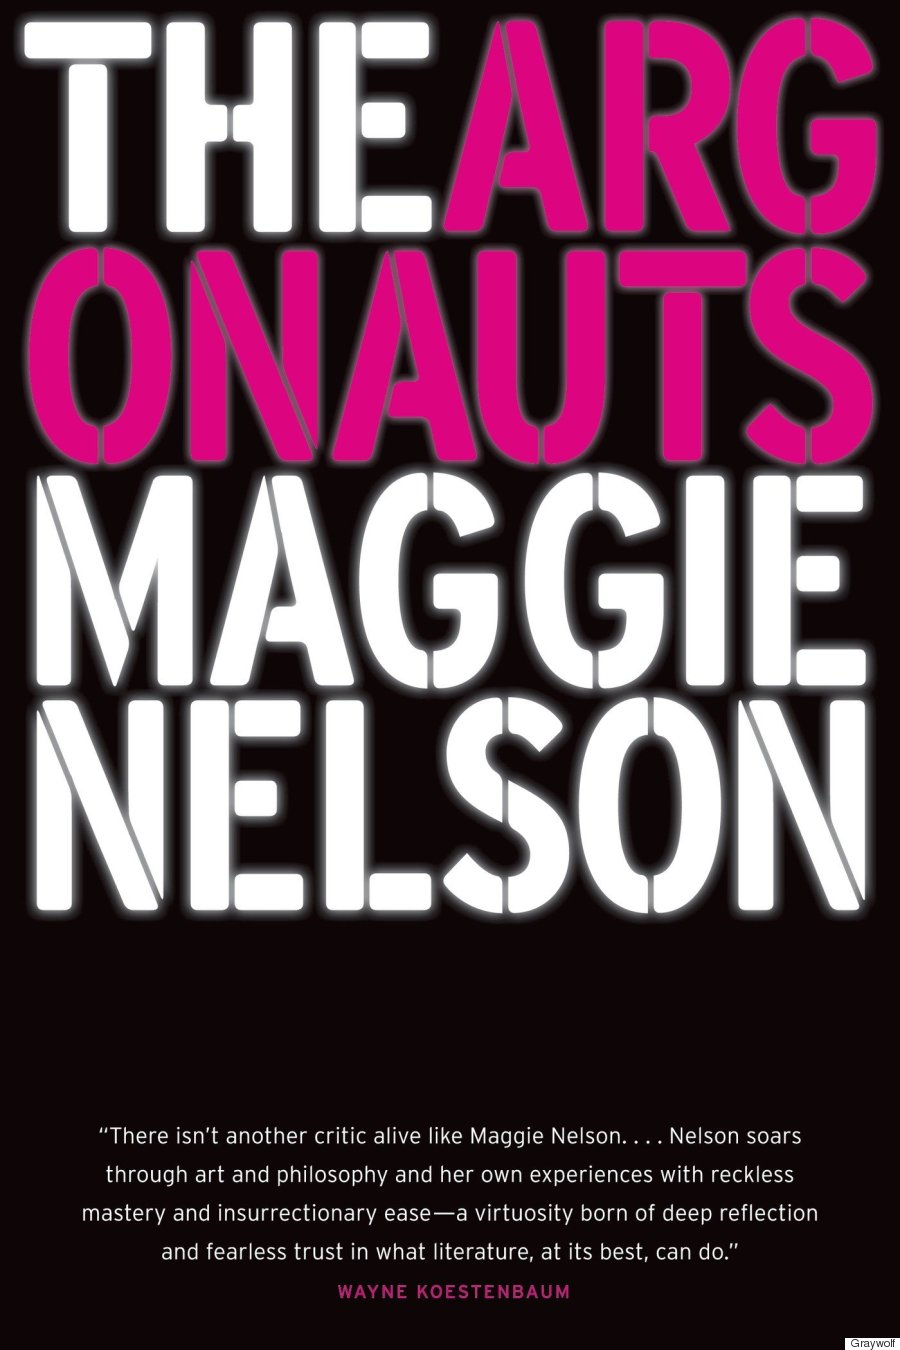 Part memoir, part criticism, part beautifully blunt prose; The Argonauts by Maggie Nelson is really worth your time. She's also written Bluets and Jane: A Murder which are completely different but just as good.